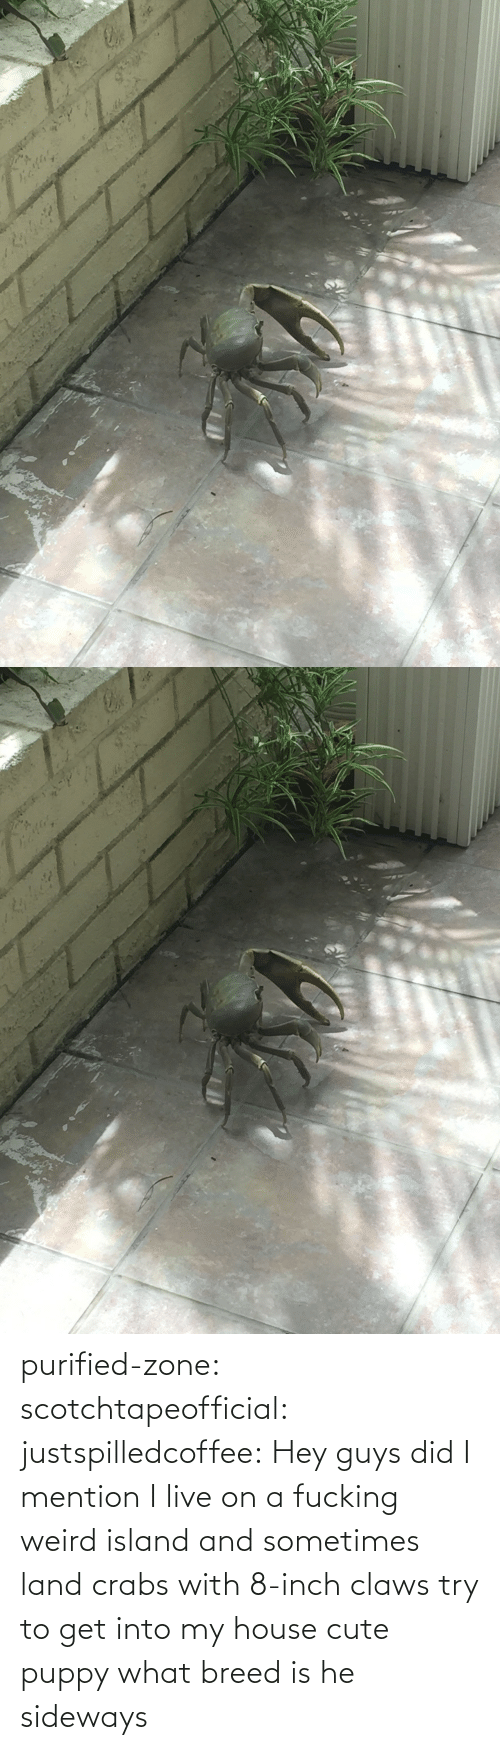 i live: purified-zone: scotchtapeofficial:  justspilledcoffee:  Hey guys did I mention I live on a fucking weird island and sometimes land crabs with 8-inch claws try to get into my house  cute puppy what breed is he  sideways